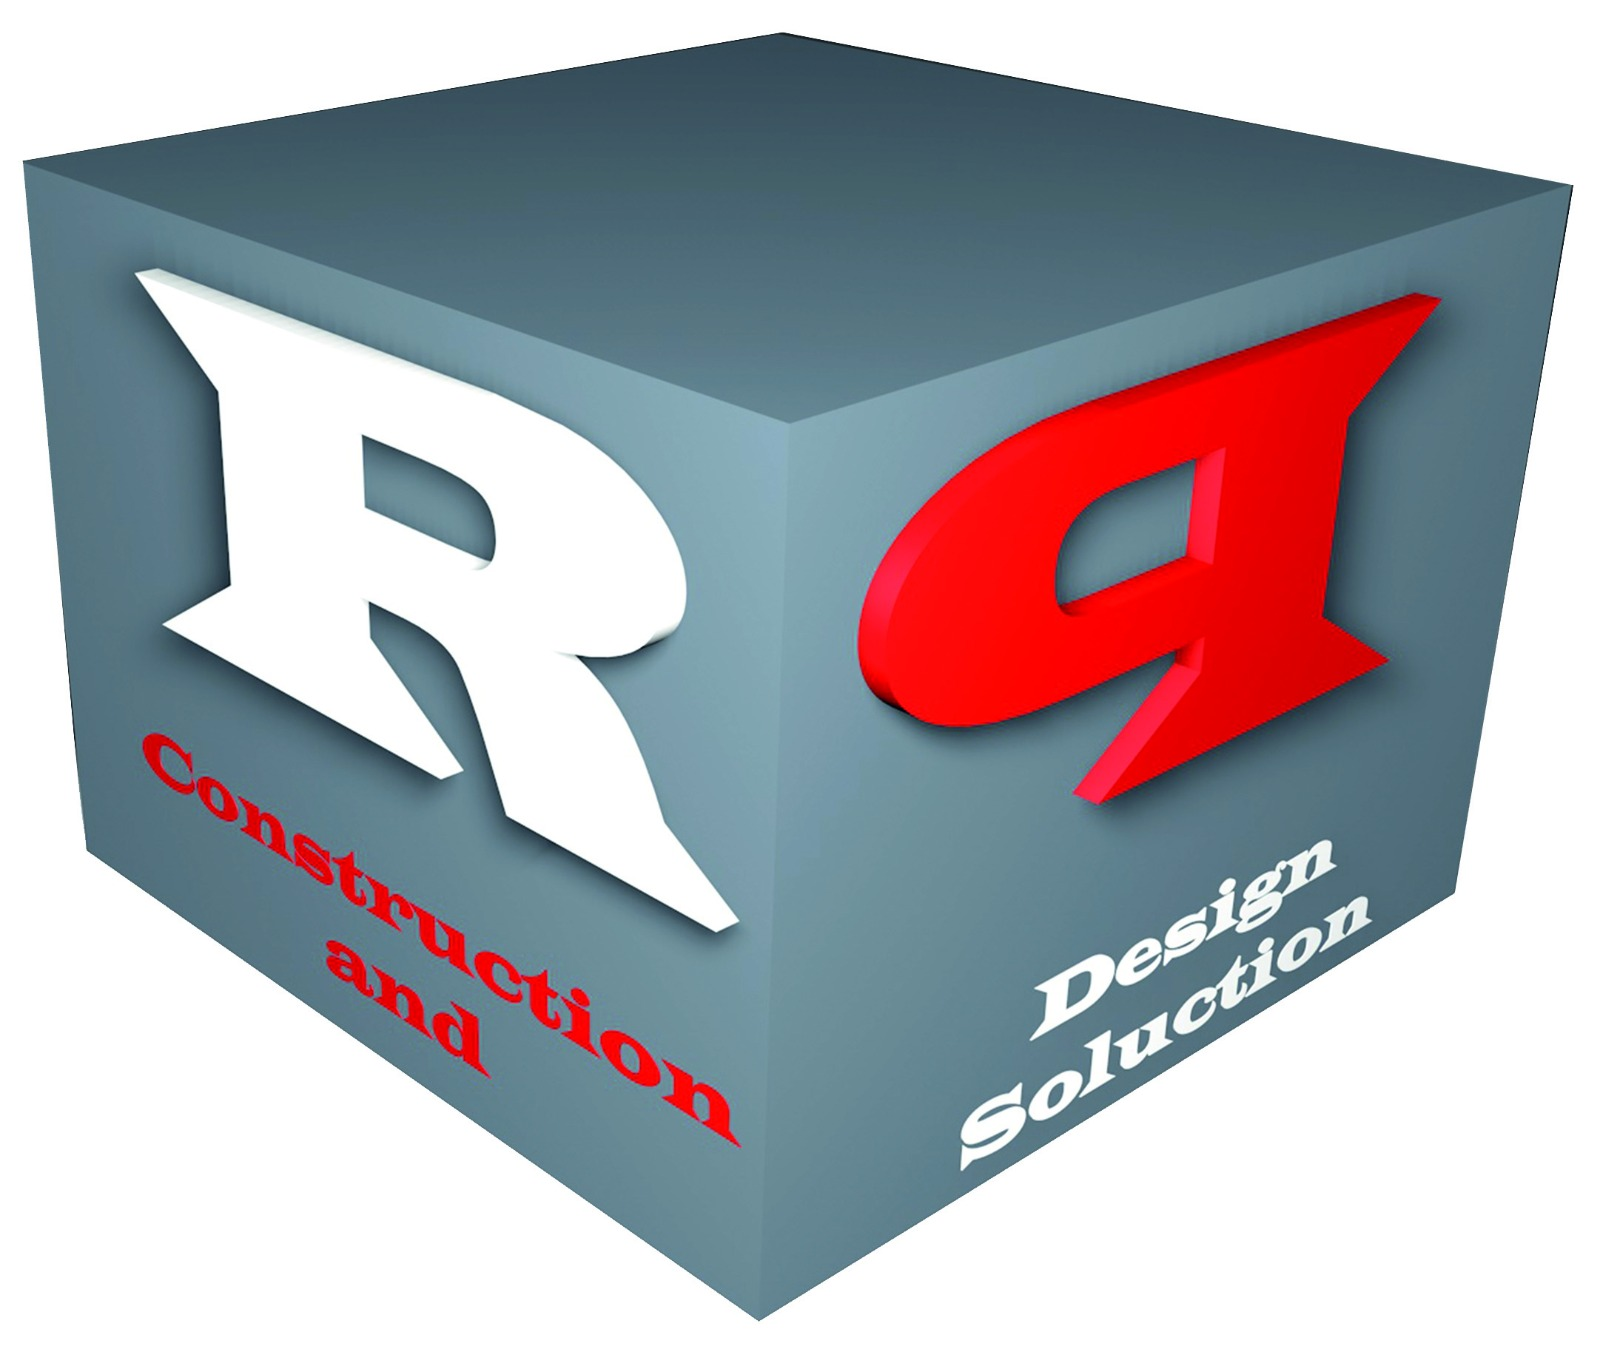 Rp Costruction And Design Soluction